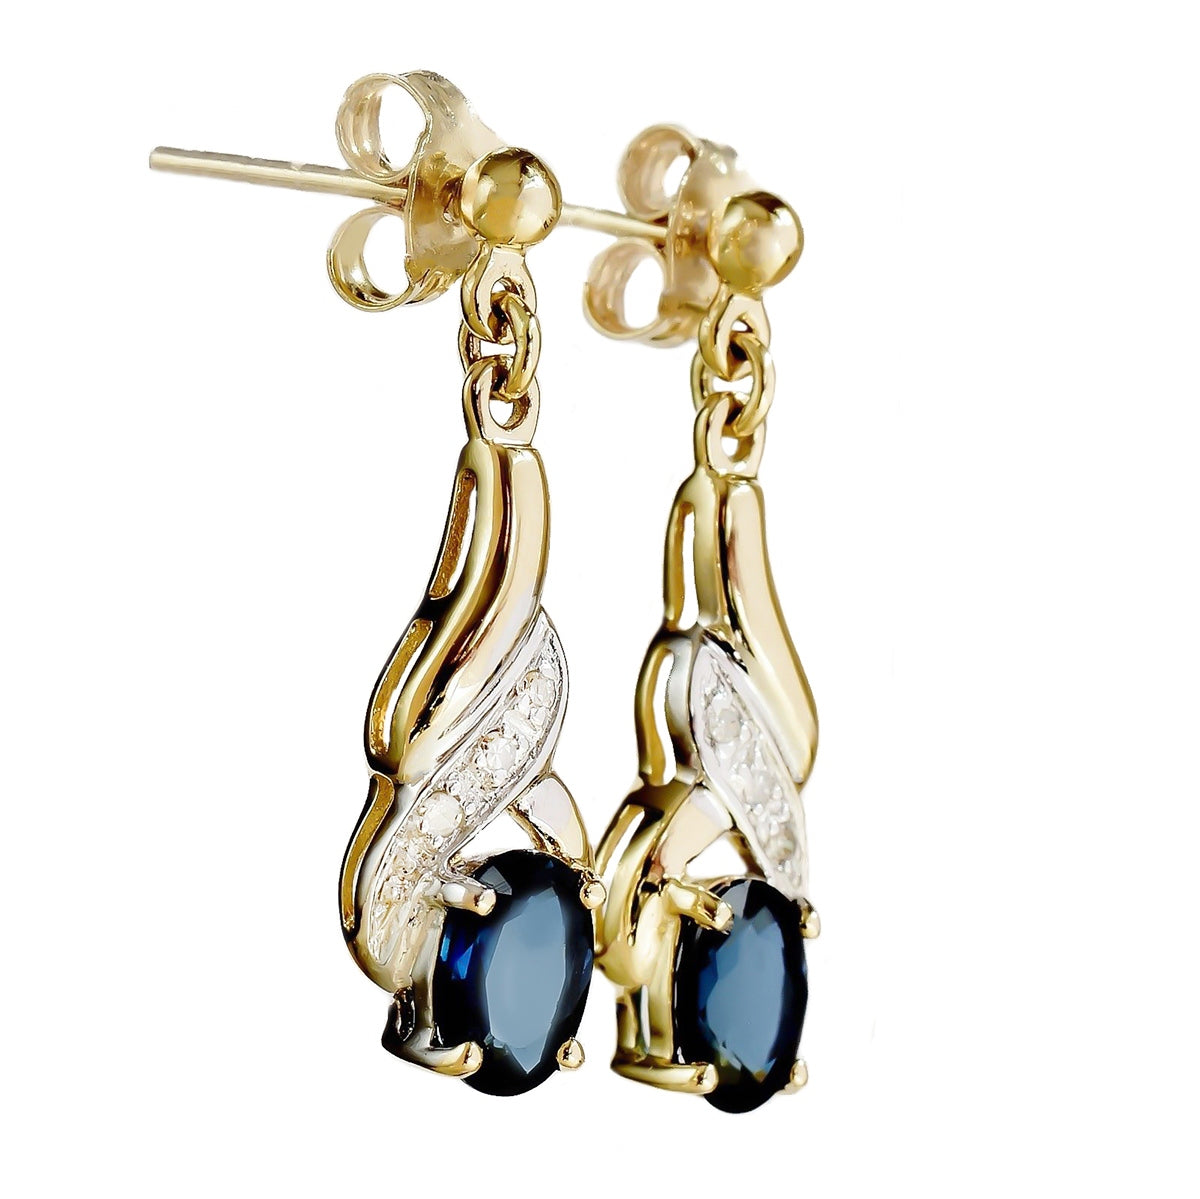 9K SOLID GOLD 1.20CT NATURAL BLUE SAPPHIRE AND 6 DIAMOND DROP DANGLE EARRINGS.